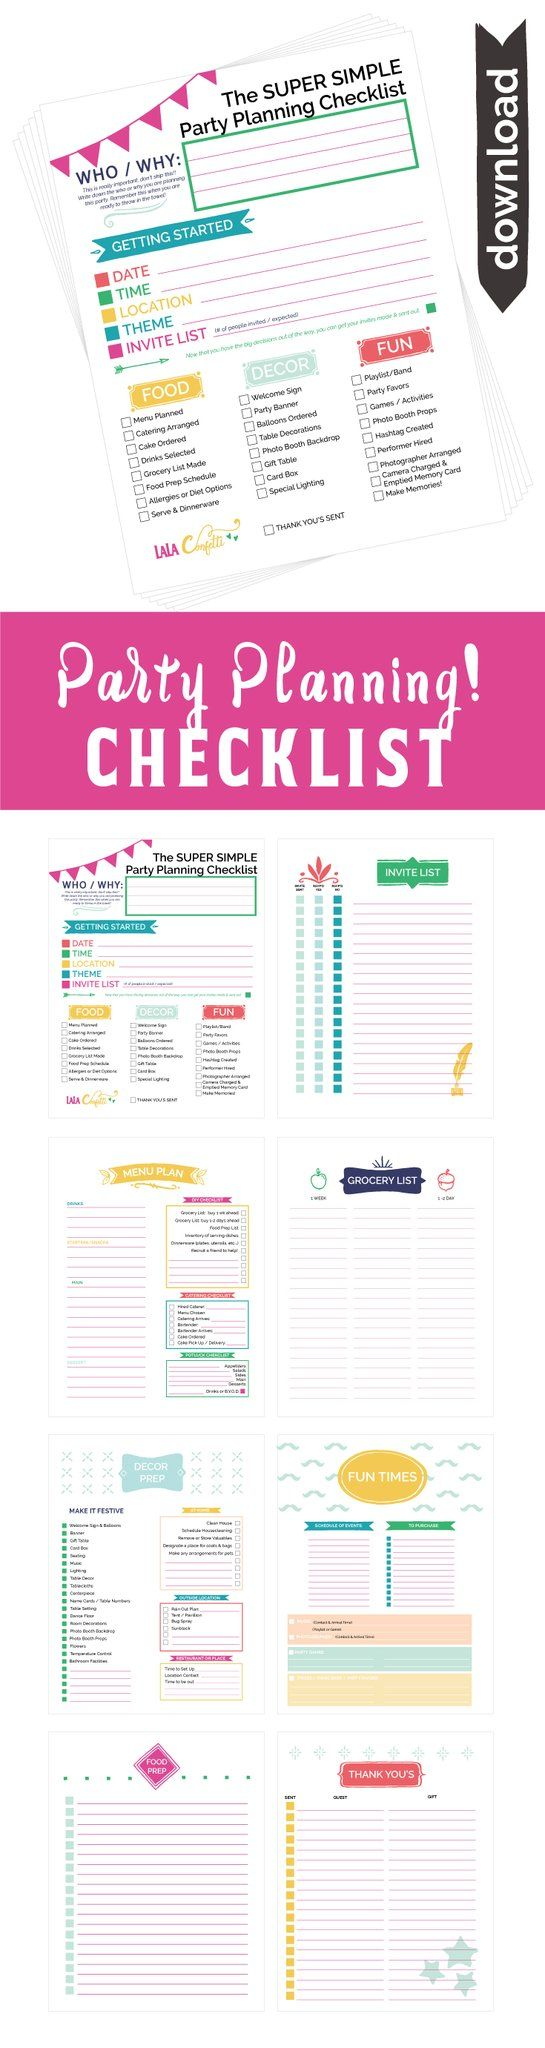 Party Planning Checklist, Printable Party Planner, Free Printable, Party Checklist, Party Planner, Party Planning Template